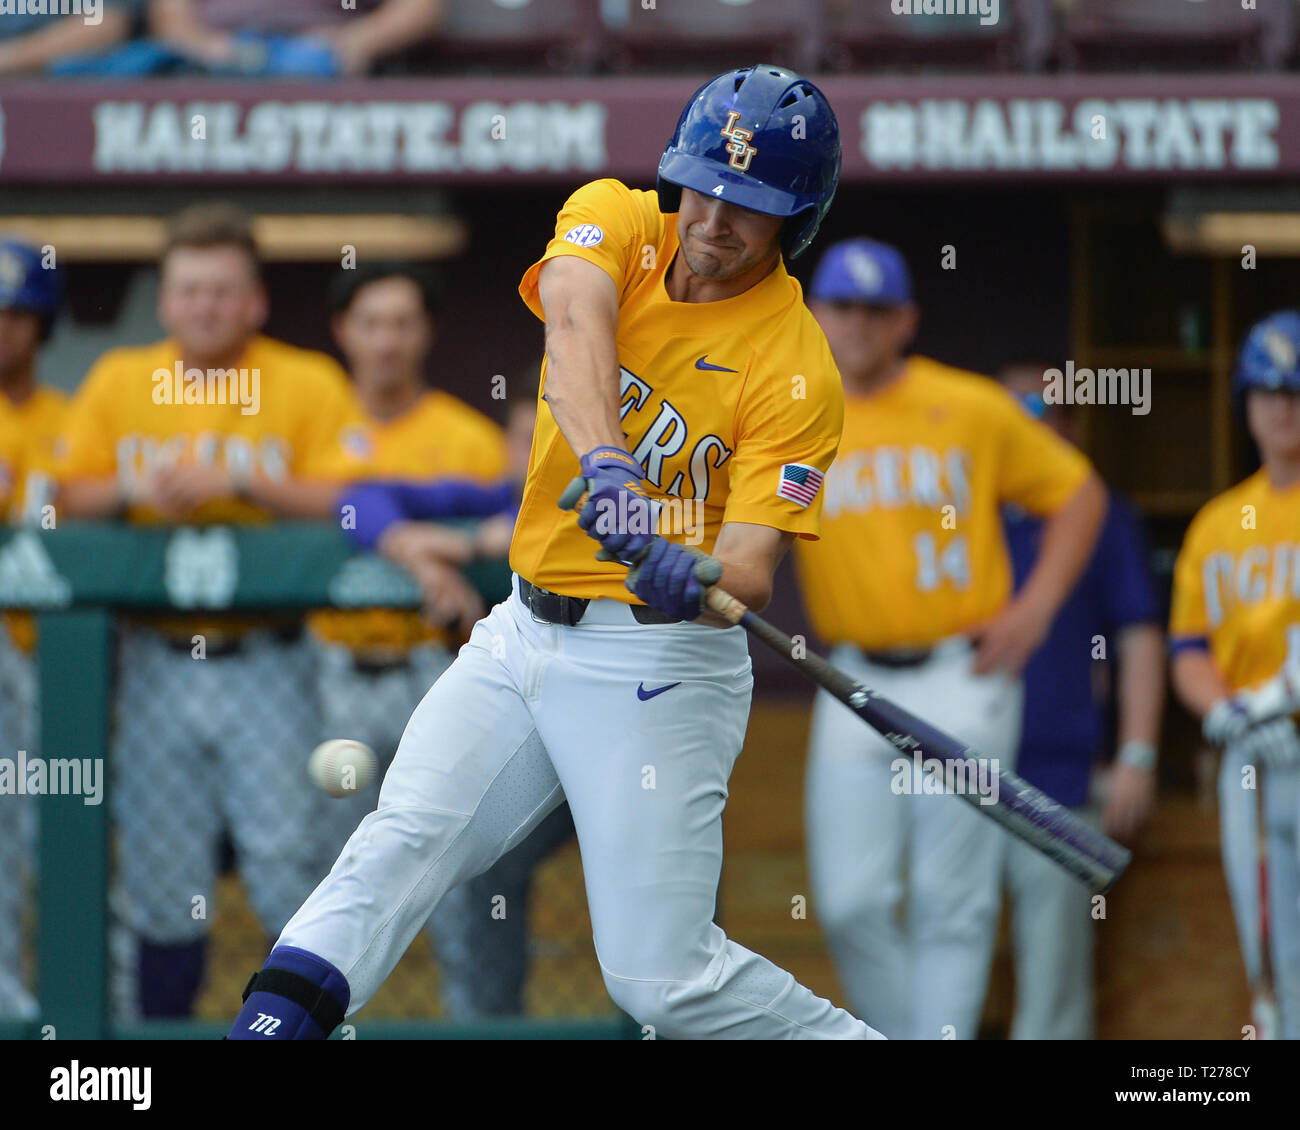 Mississippi, USA.  30th Mar, 2019. in action during the NCAA baseball game between the LSU Tigers and the Mississippi State Bulldogs at Dudy Noble Field in Starkville, MS. LSU defeated Mississippi State, 11-2. Kevin Langley/Sports South Media/CSM/Alamy Live News Stock Photo